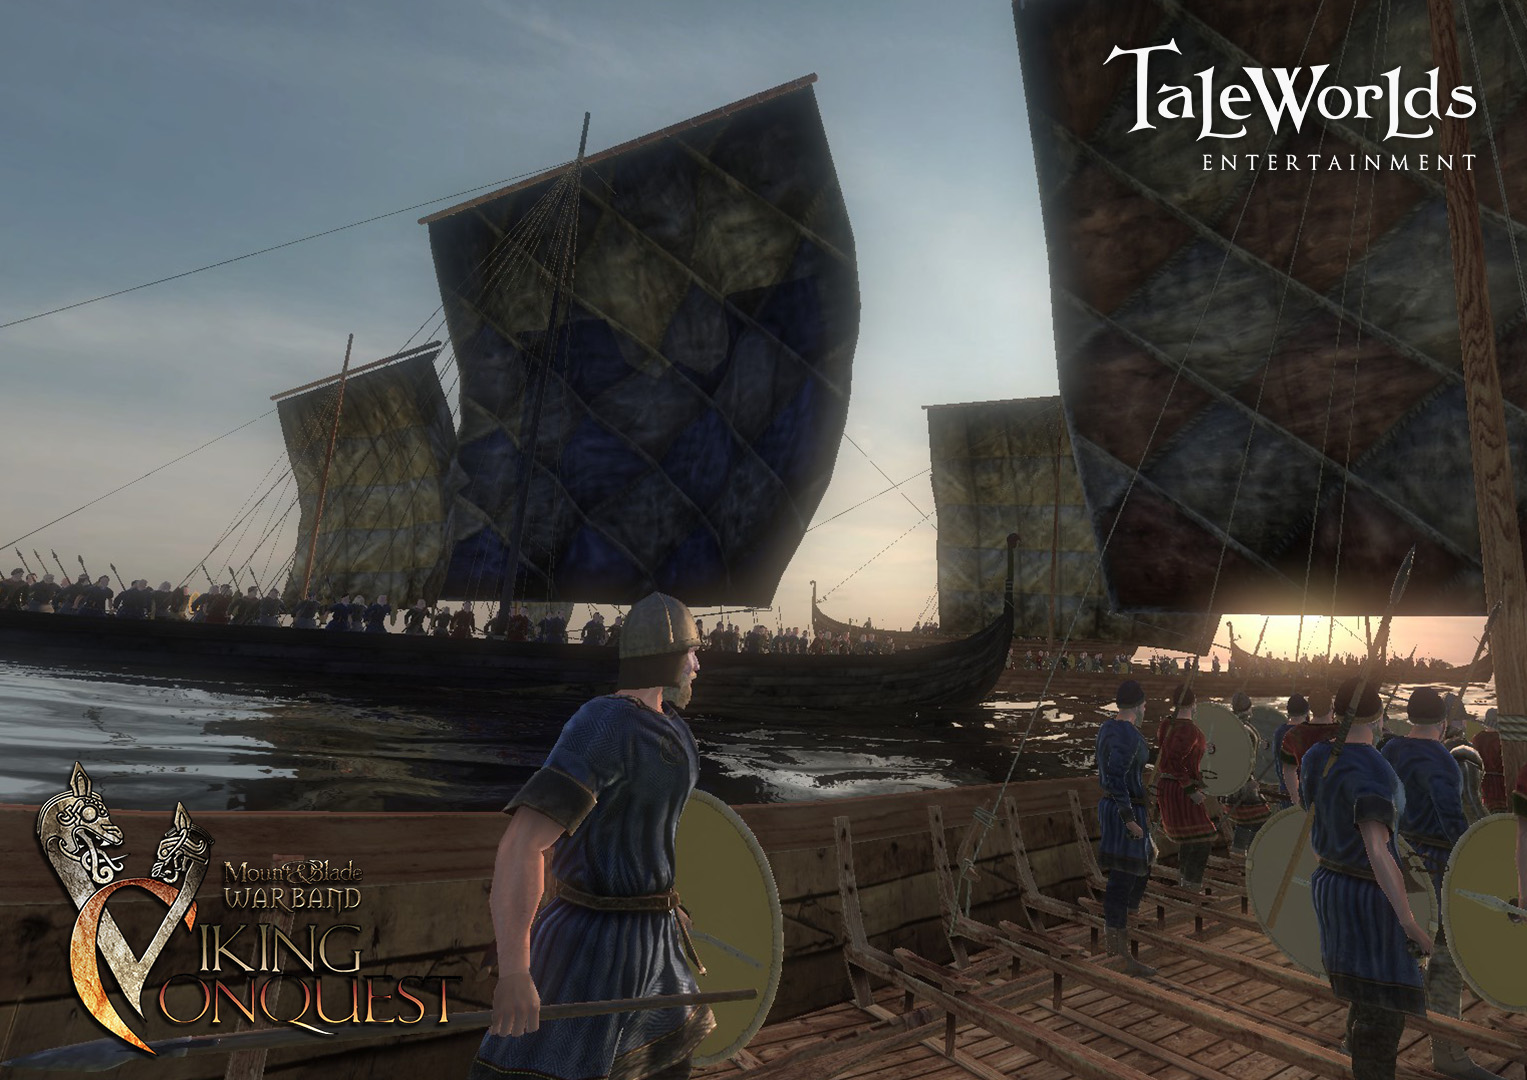 https://www.indiedb.com/games/mount-blade-warband-viking-conquest